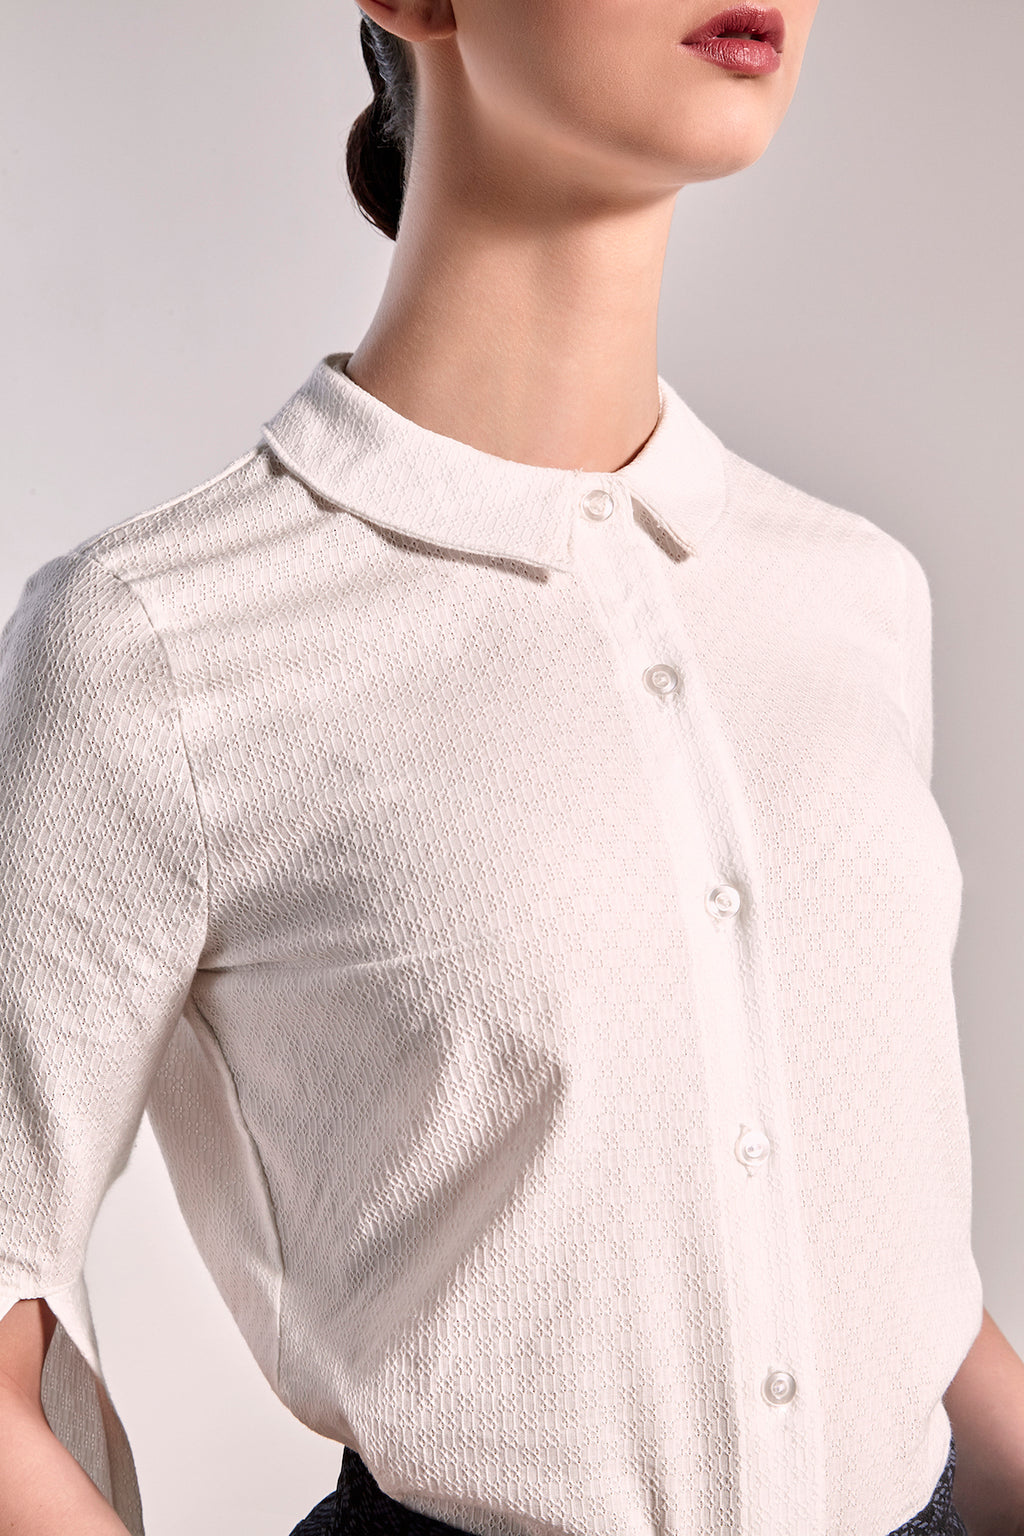 White Bergen Shirt Shirts The Fashion Advocate Ethical Australian fashion designer boutique Melbourne sustainable blogger